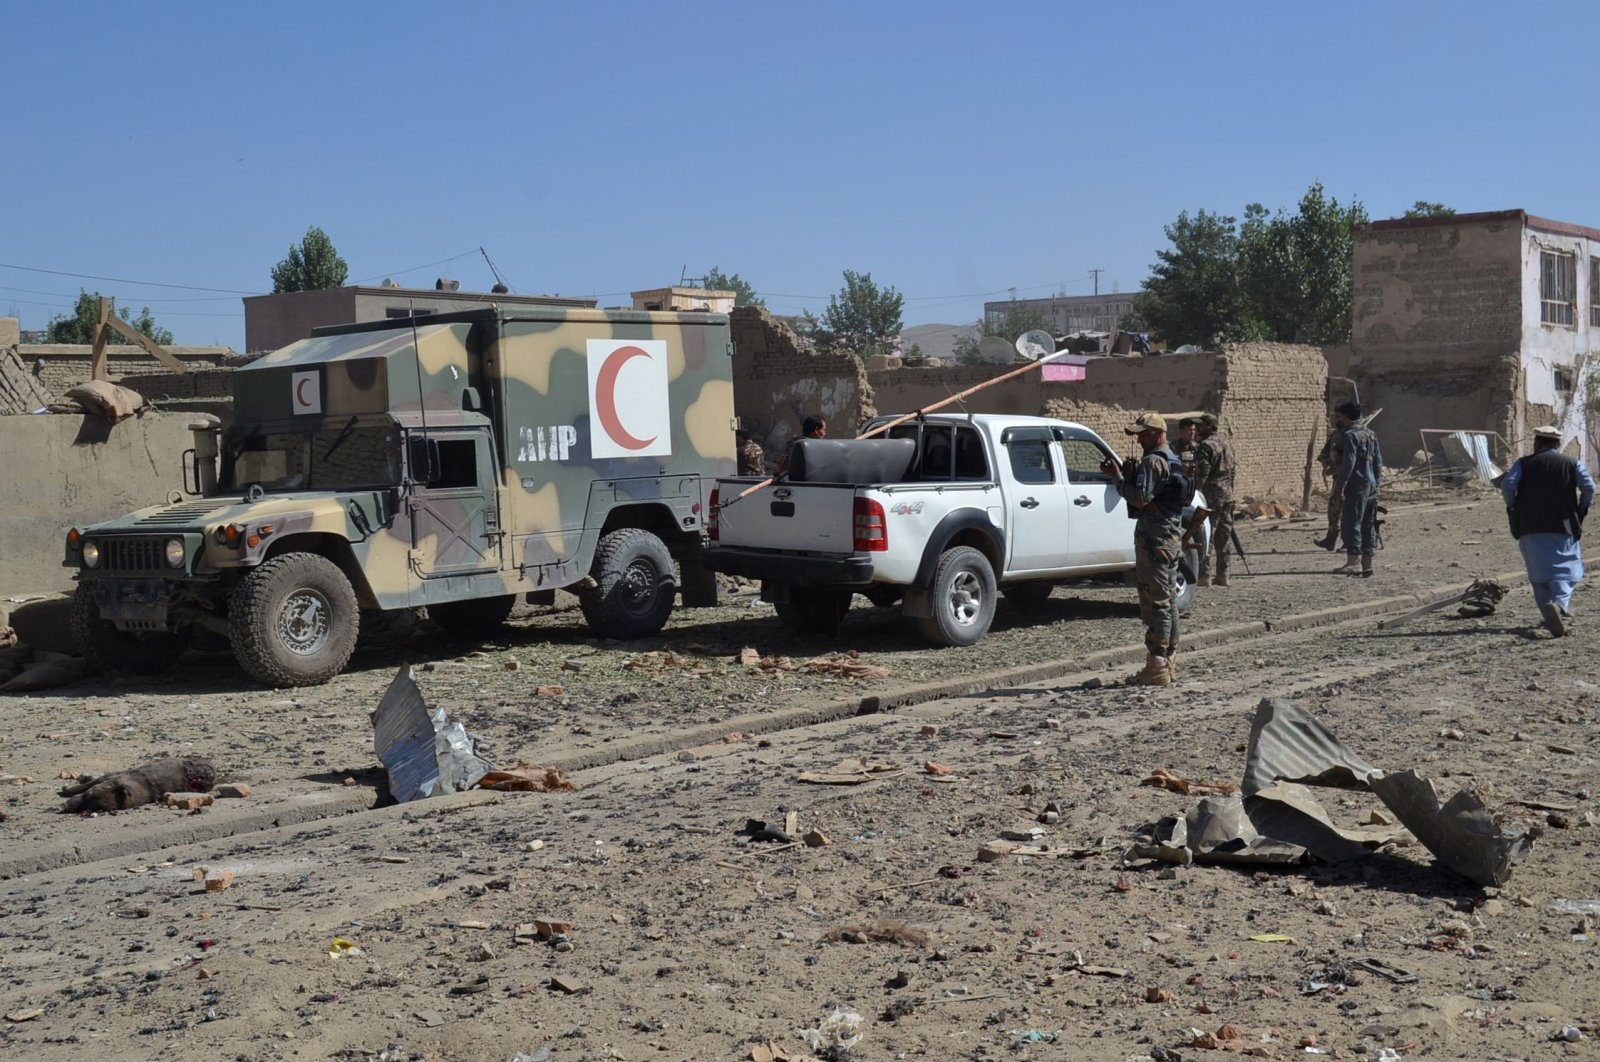 Afghan security personnel arrive at the site of a car bomb attack, Ghazni, July 7, 2019. (AFP Photo)